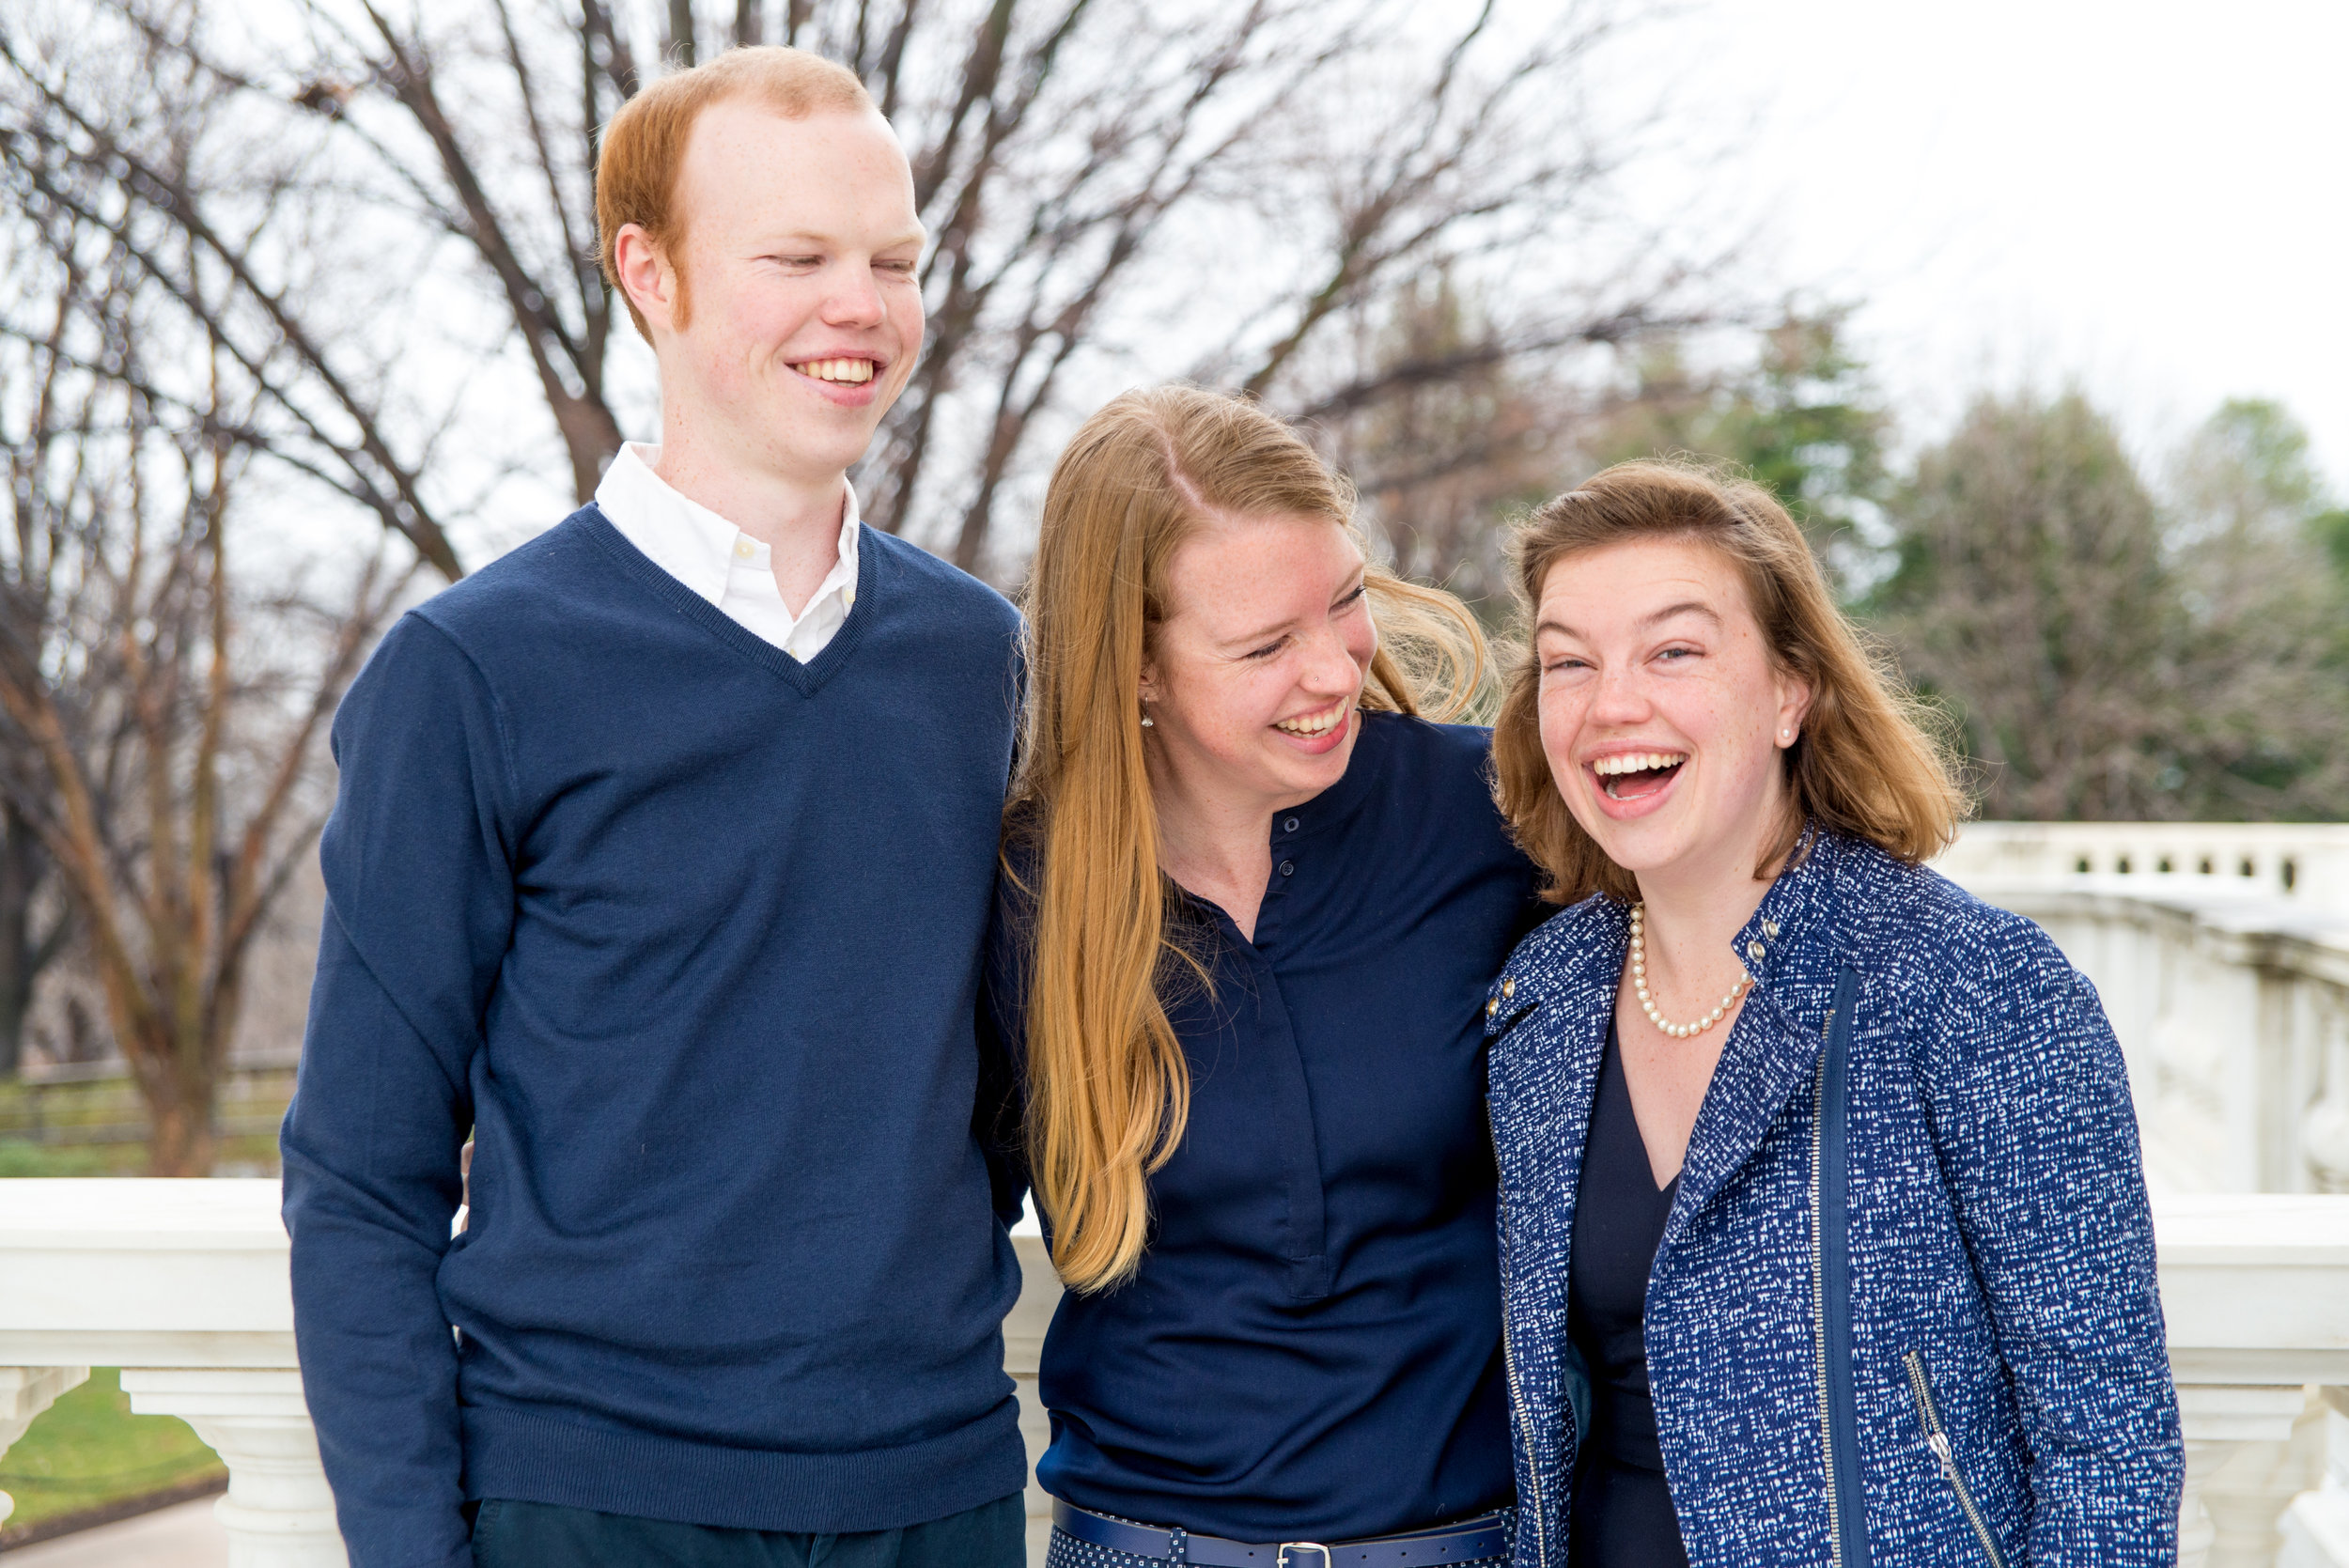 Arlington Family Portrait Session